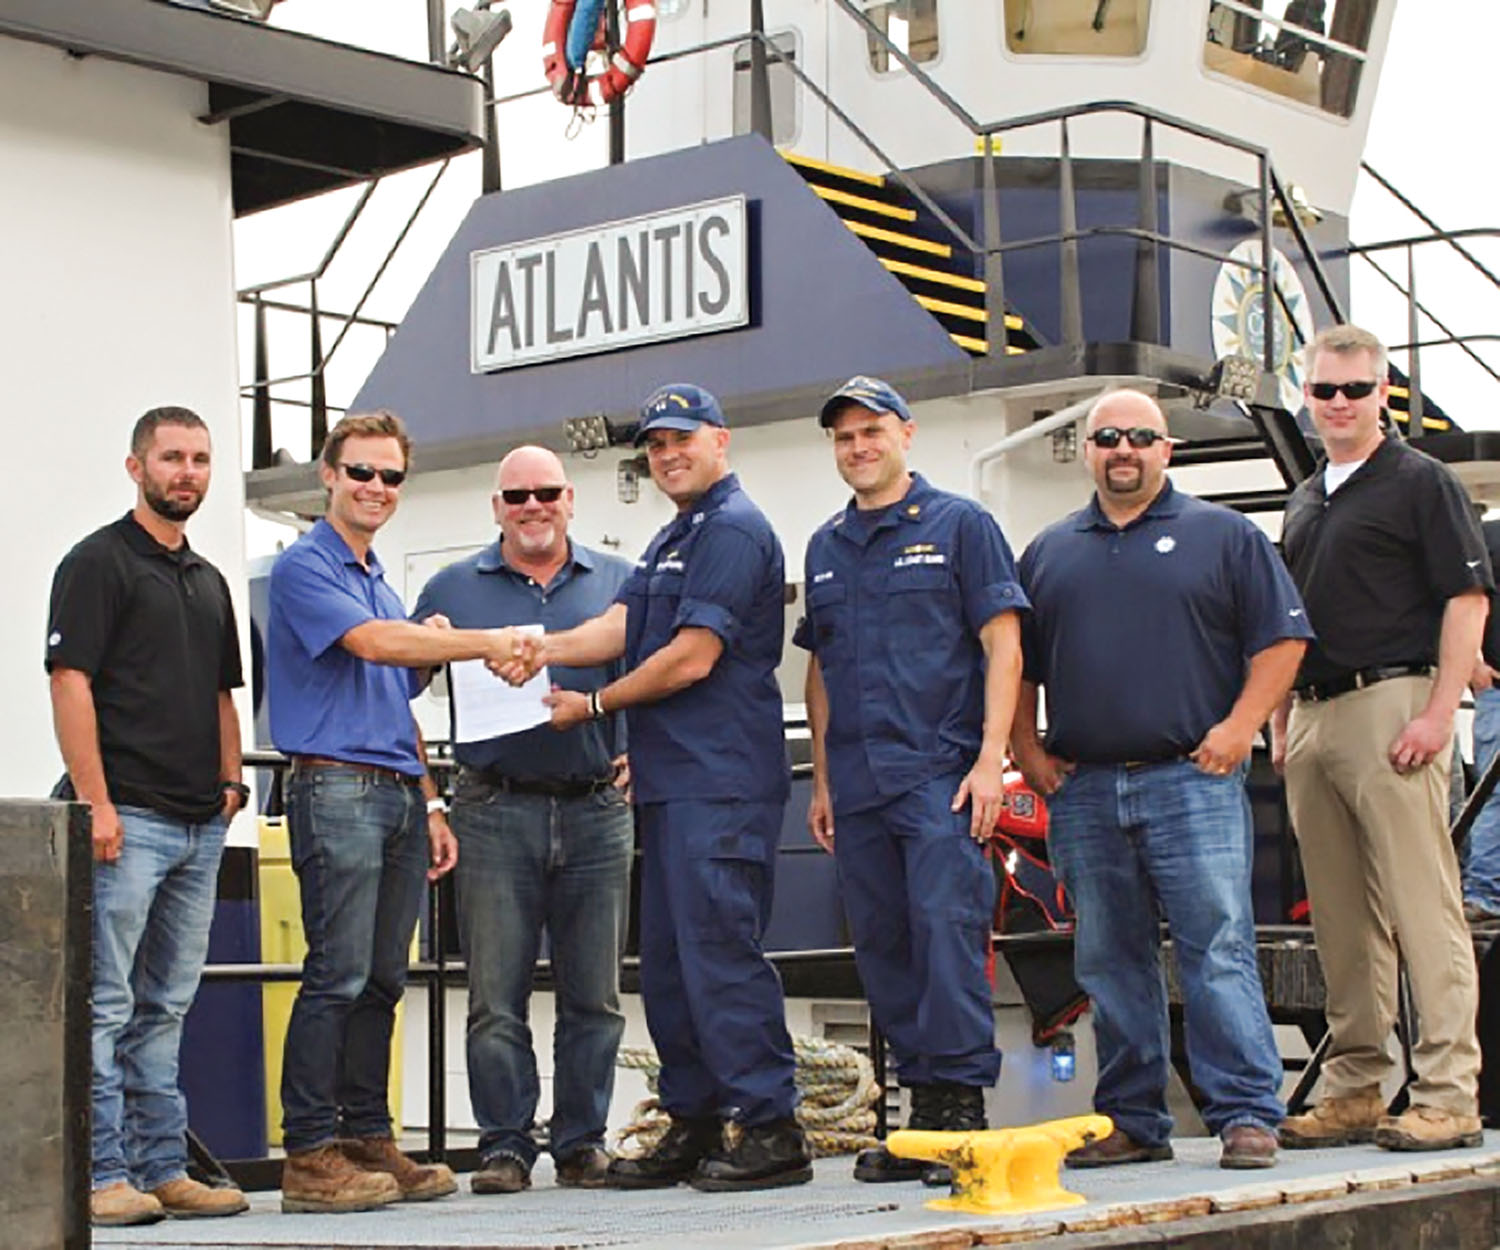 From left, Port Engineer David Westrich; C&B CFO Scott Bray; C&B co-owner Rob Carlisle; Lt. Jim Brendel, supervisor of MSD Cincinnati; CWO Michael McClain, marine inspector, MSD Cincinnati; C&B General Manager Ed Lapikas; and C&B Safety Manager Greg Schabell.